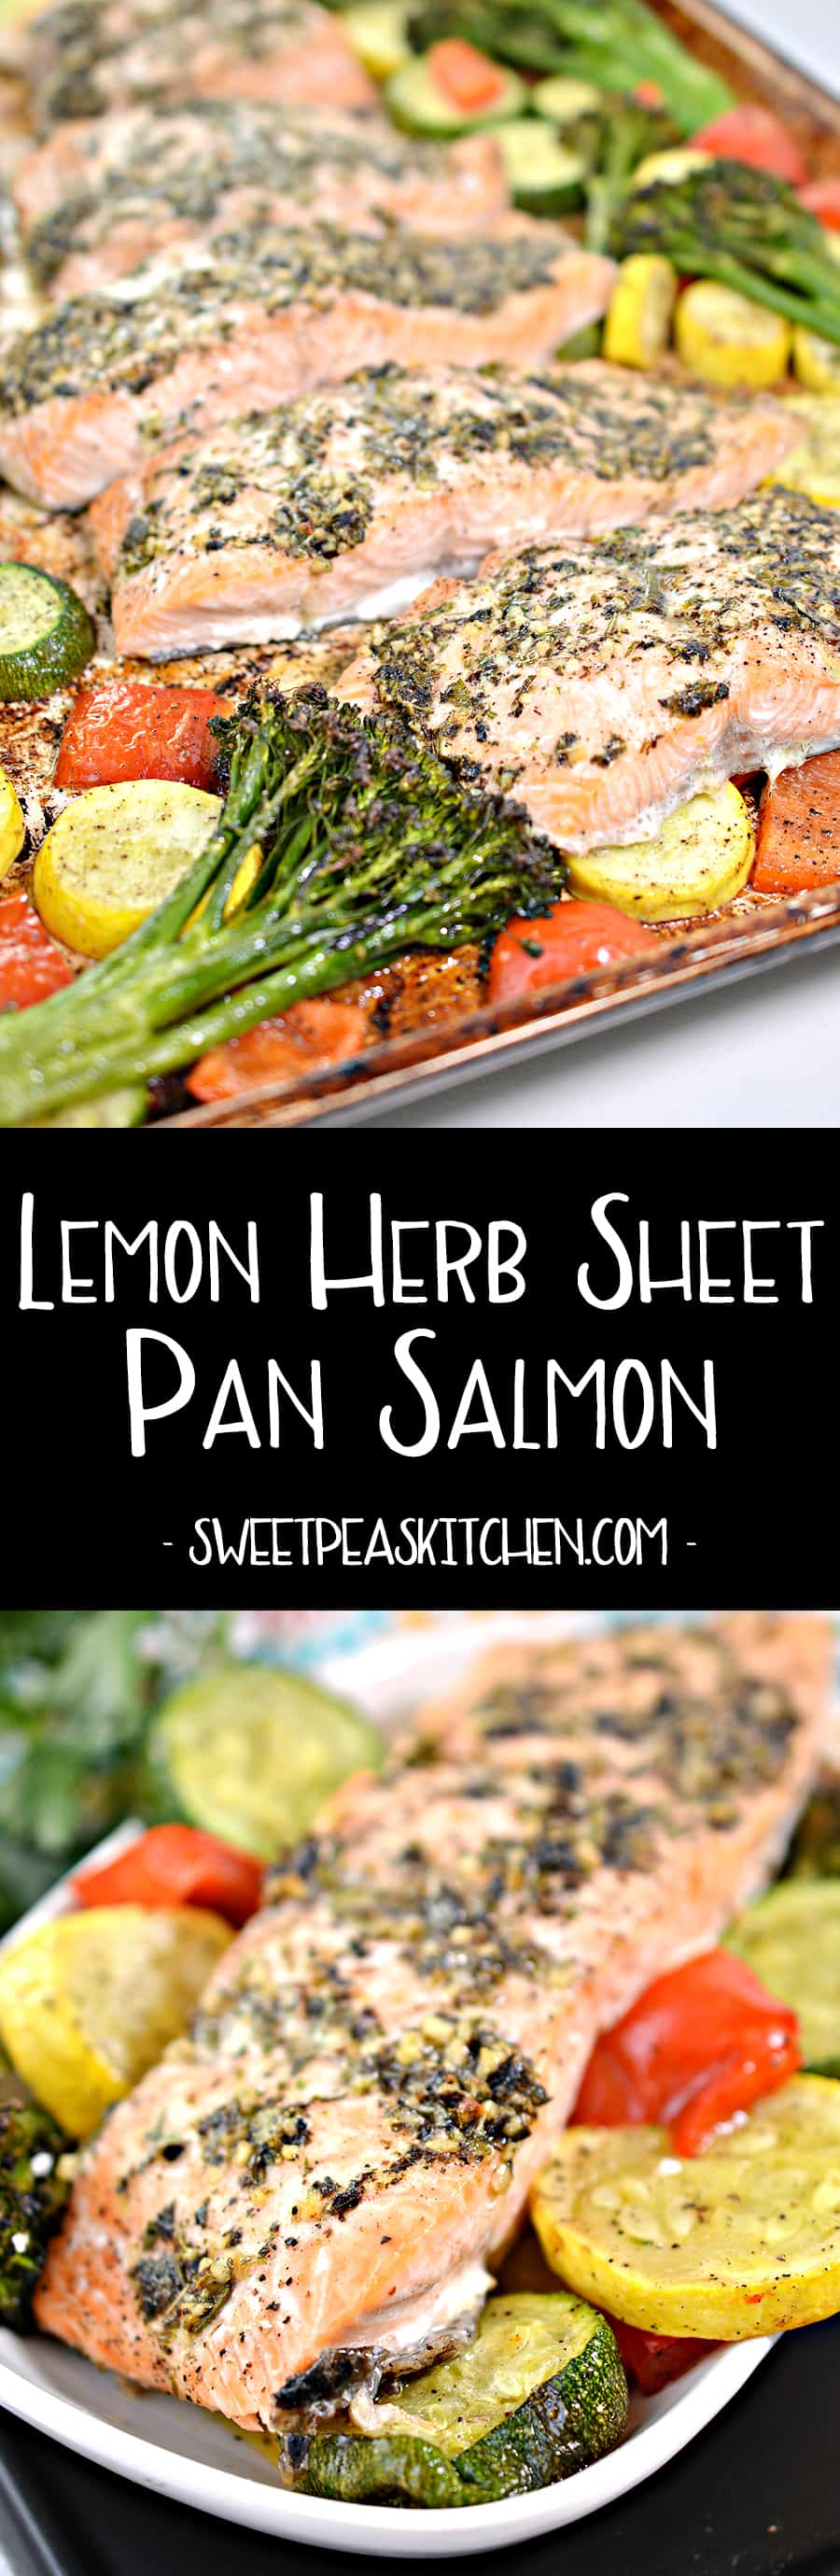 Lemon Herb Sheet Pan Salmon